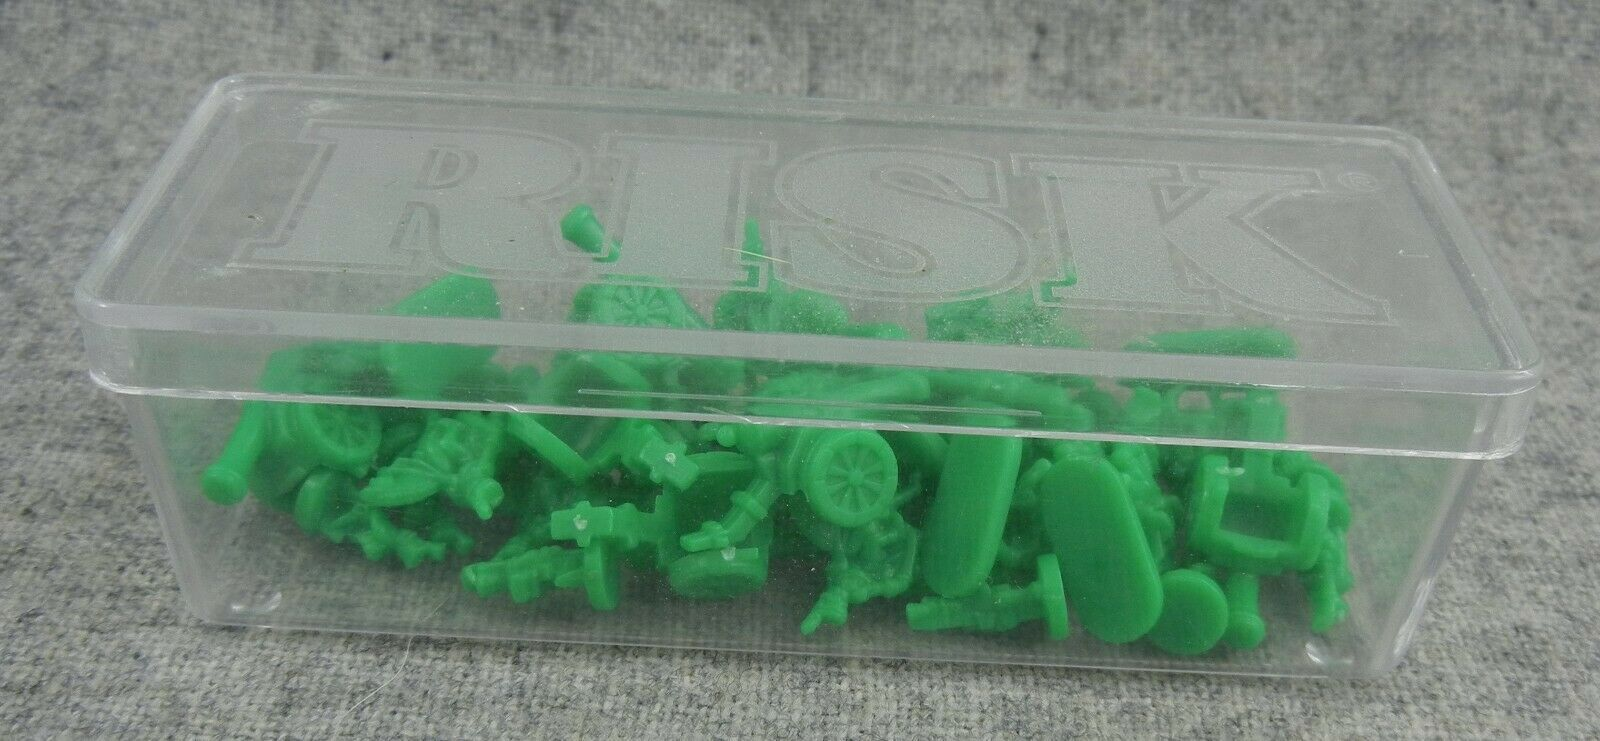 Primary image for Risk 1993-99 Green Army with storage case Replacement game parts miniatures